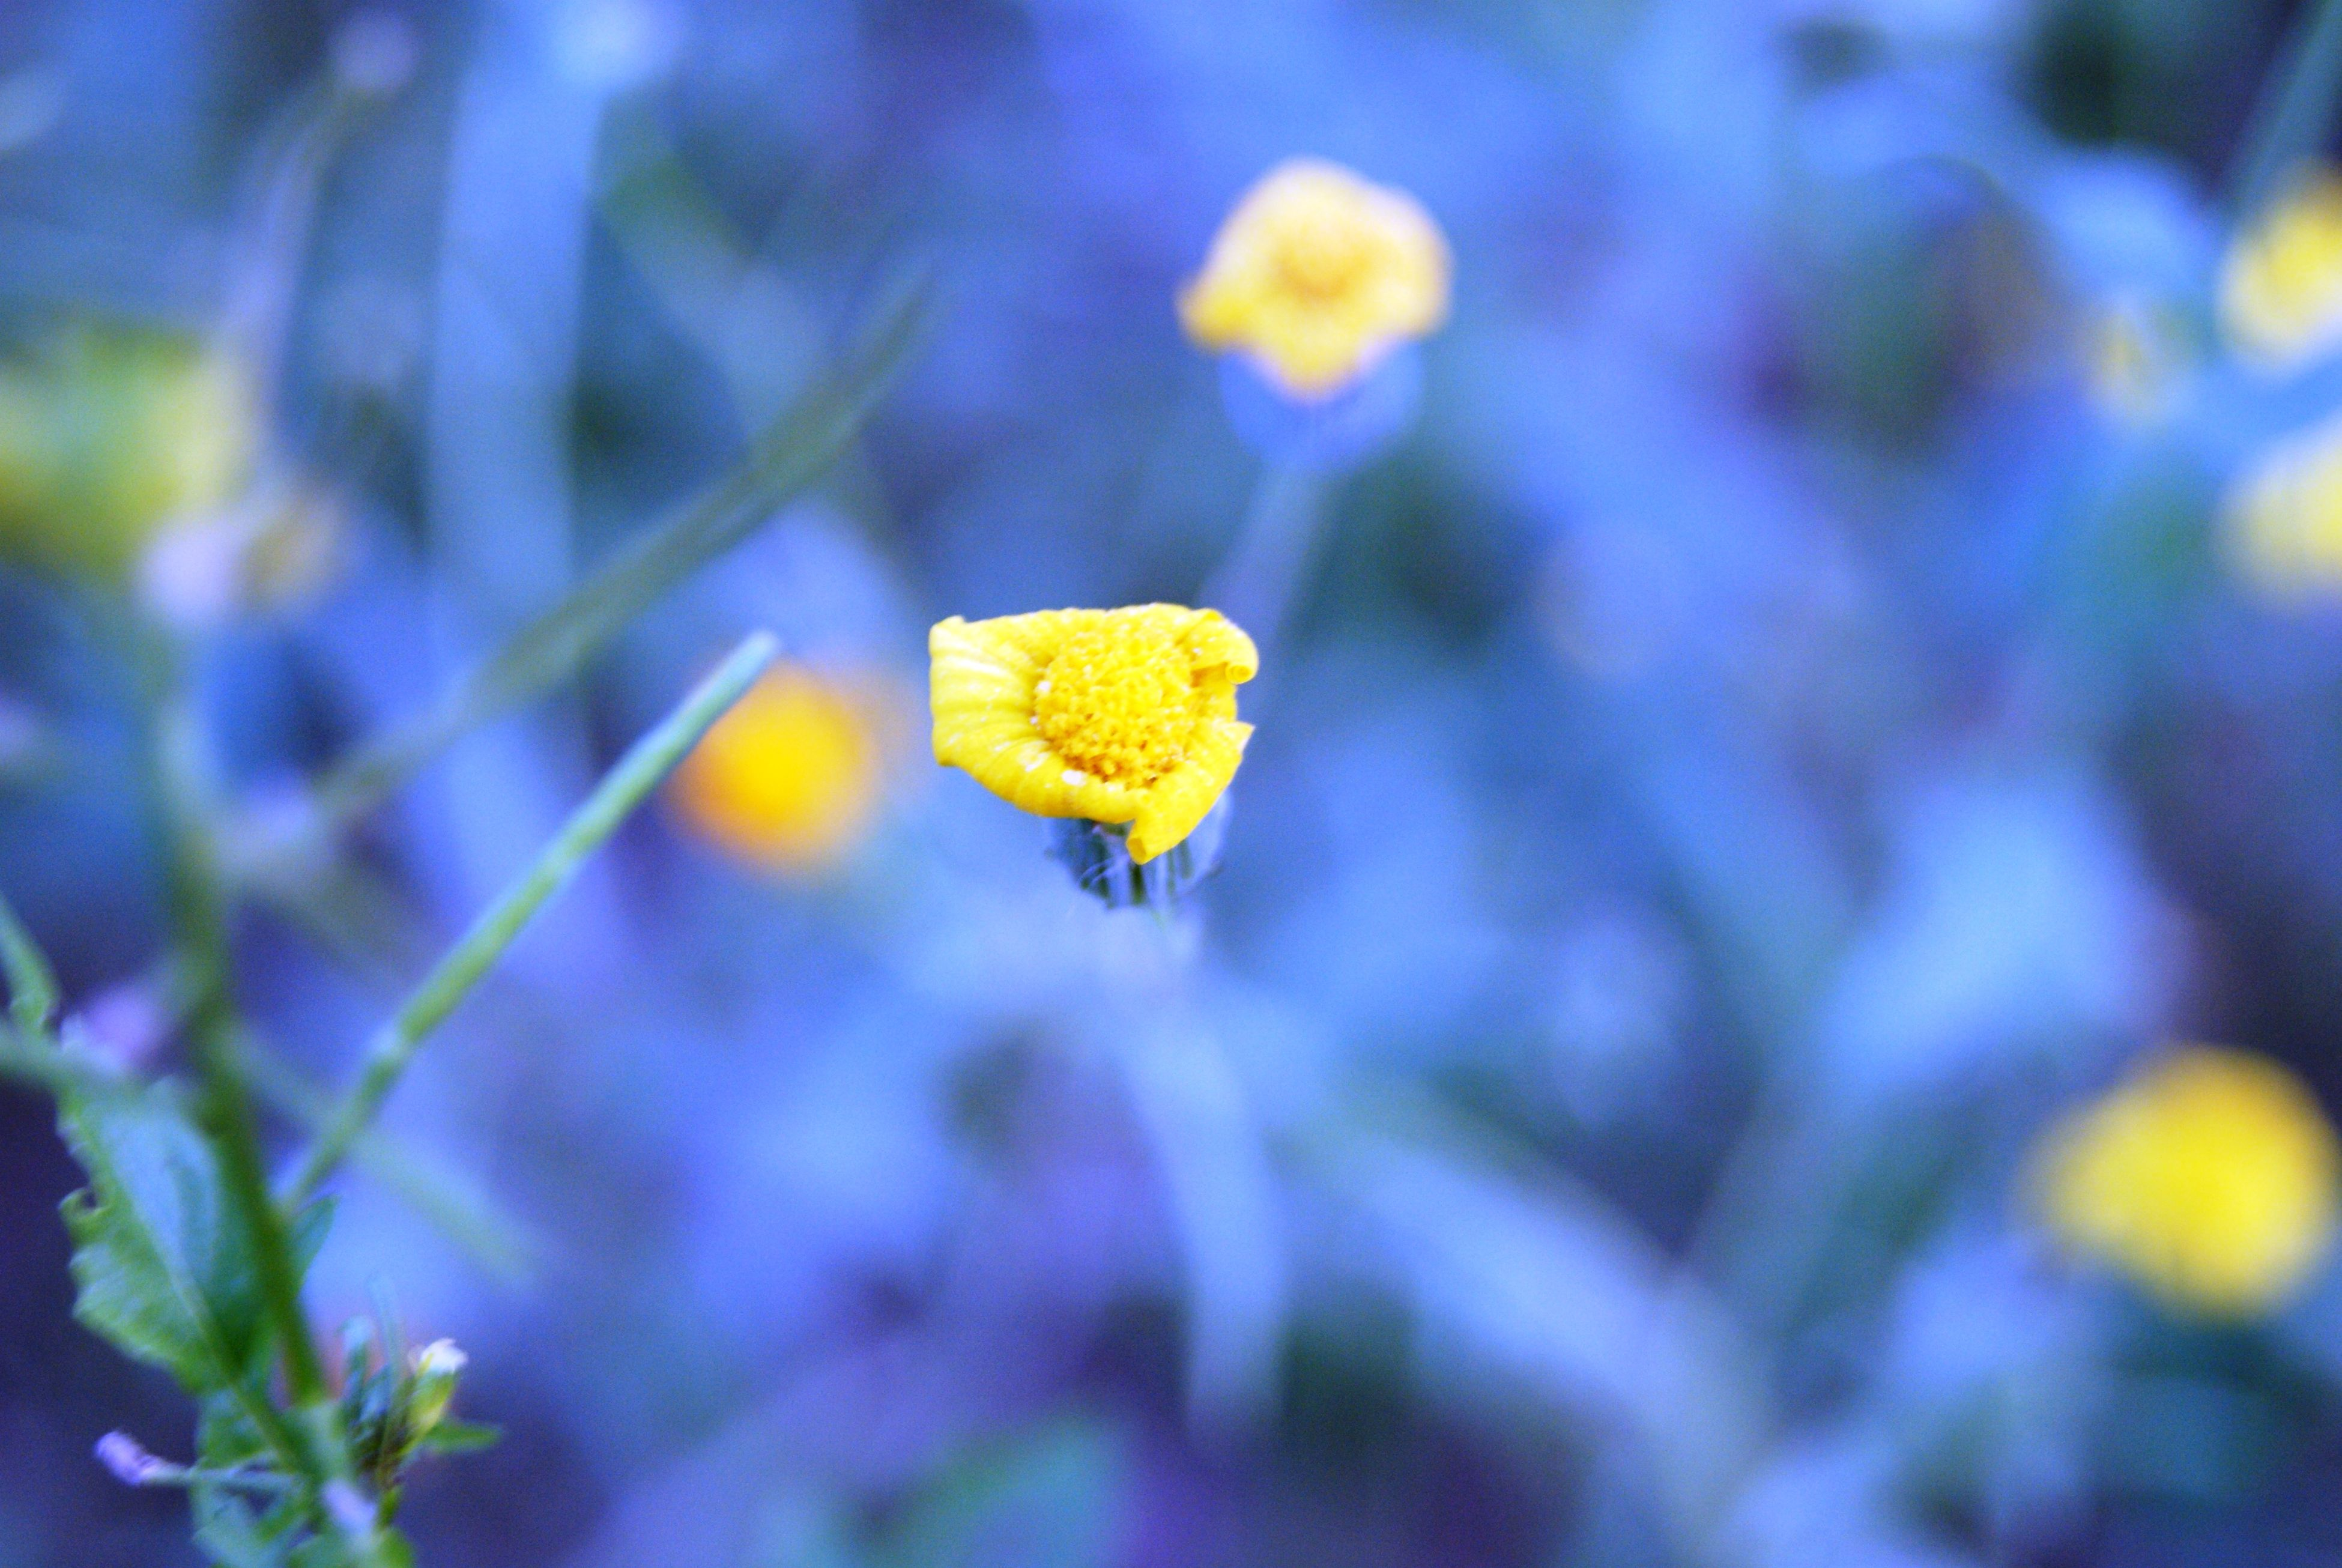 yellow, flower, fragility, growth, petal, focus on foreground, close-up, freshness, selective focus, beauty in nature, plant, nature, flower head, blooming, stem, outdoors, day, no people, in bloom, field